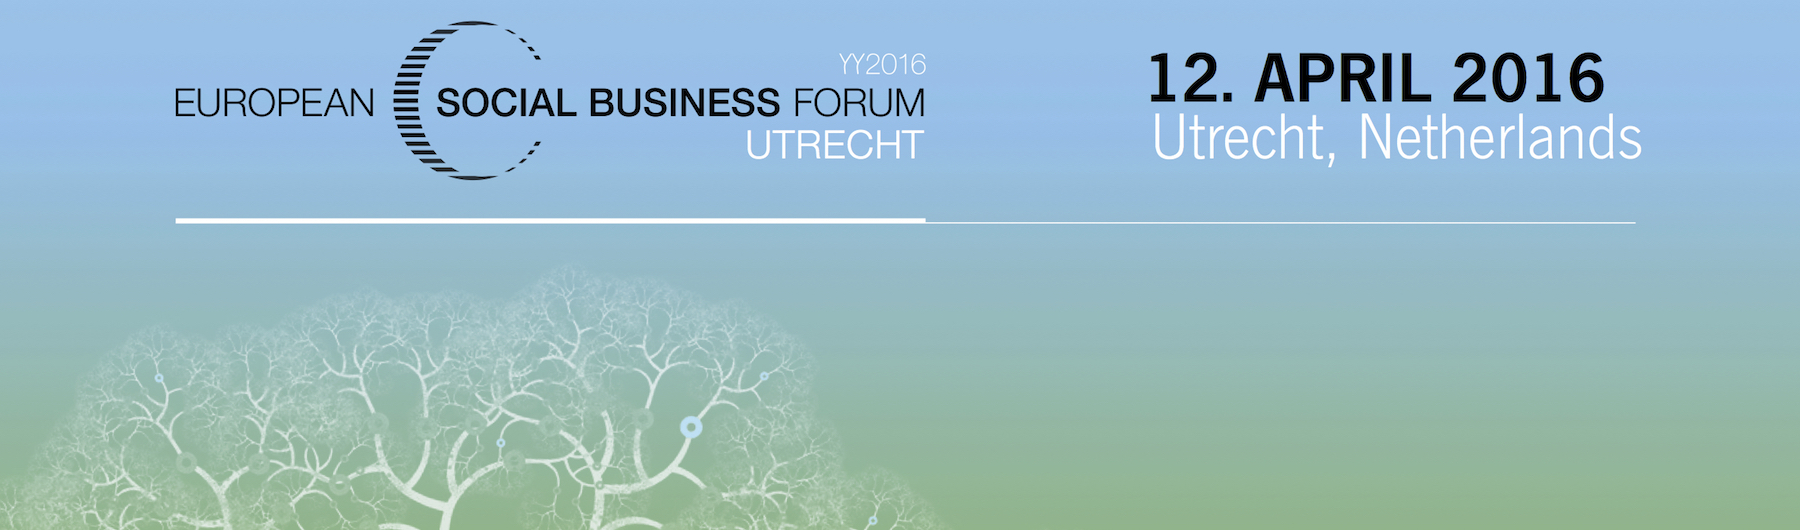 European Social Business Forum 2016